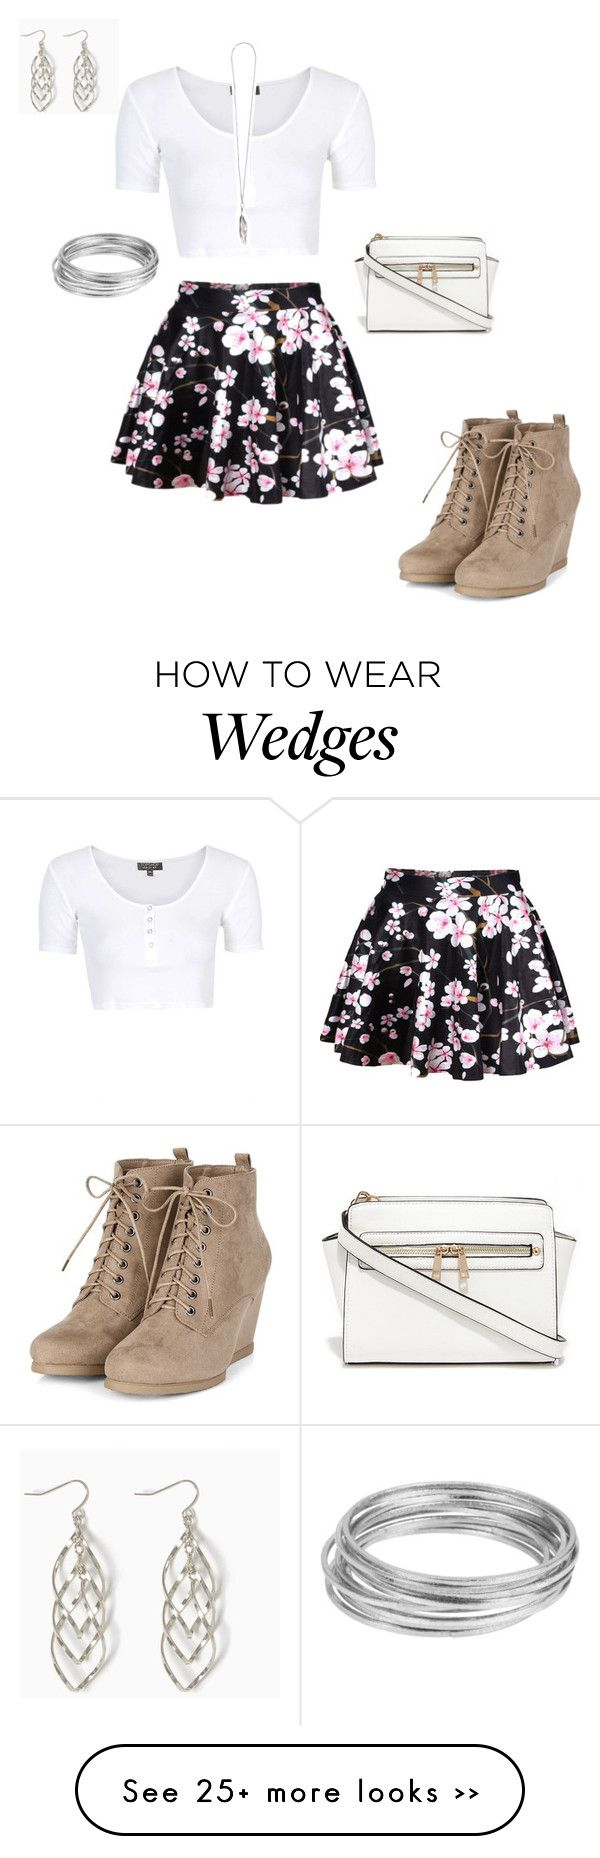 """Untitled #476"" by summerloveforever335 on Polyvore featuring Topshop, Worthington and Ann Demeulemeester"